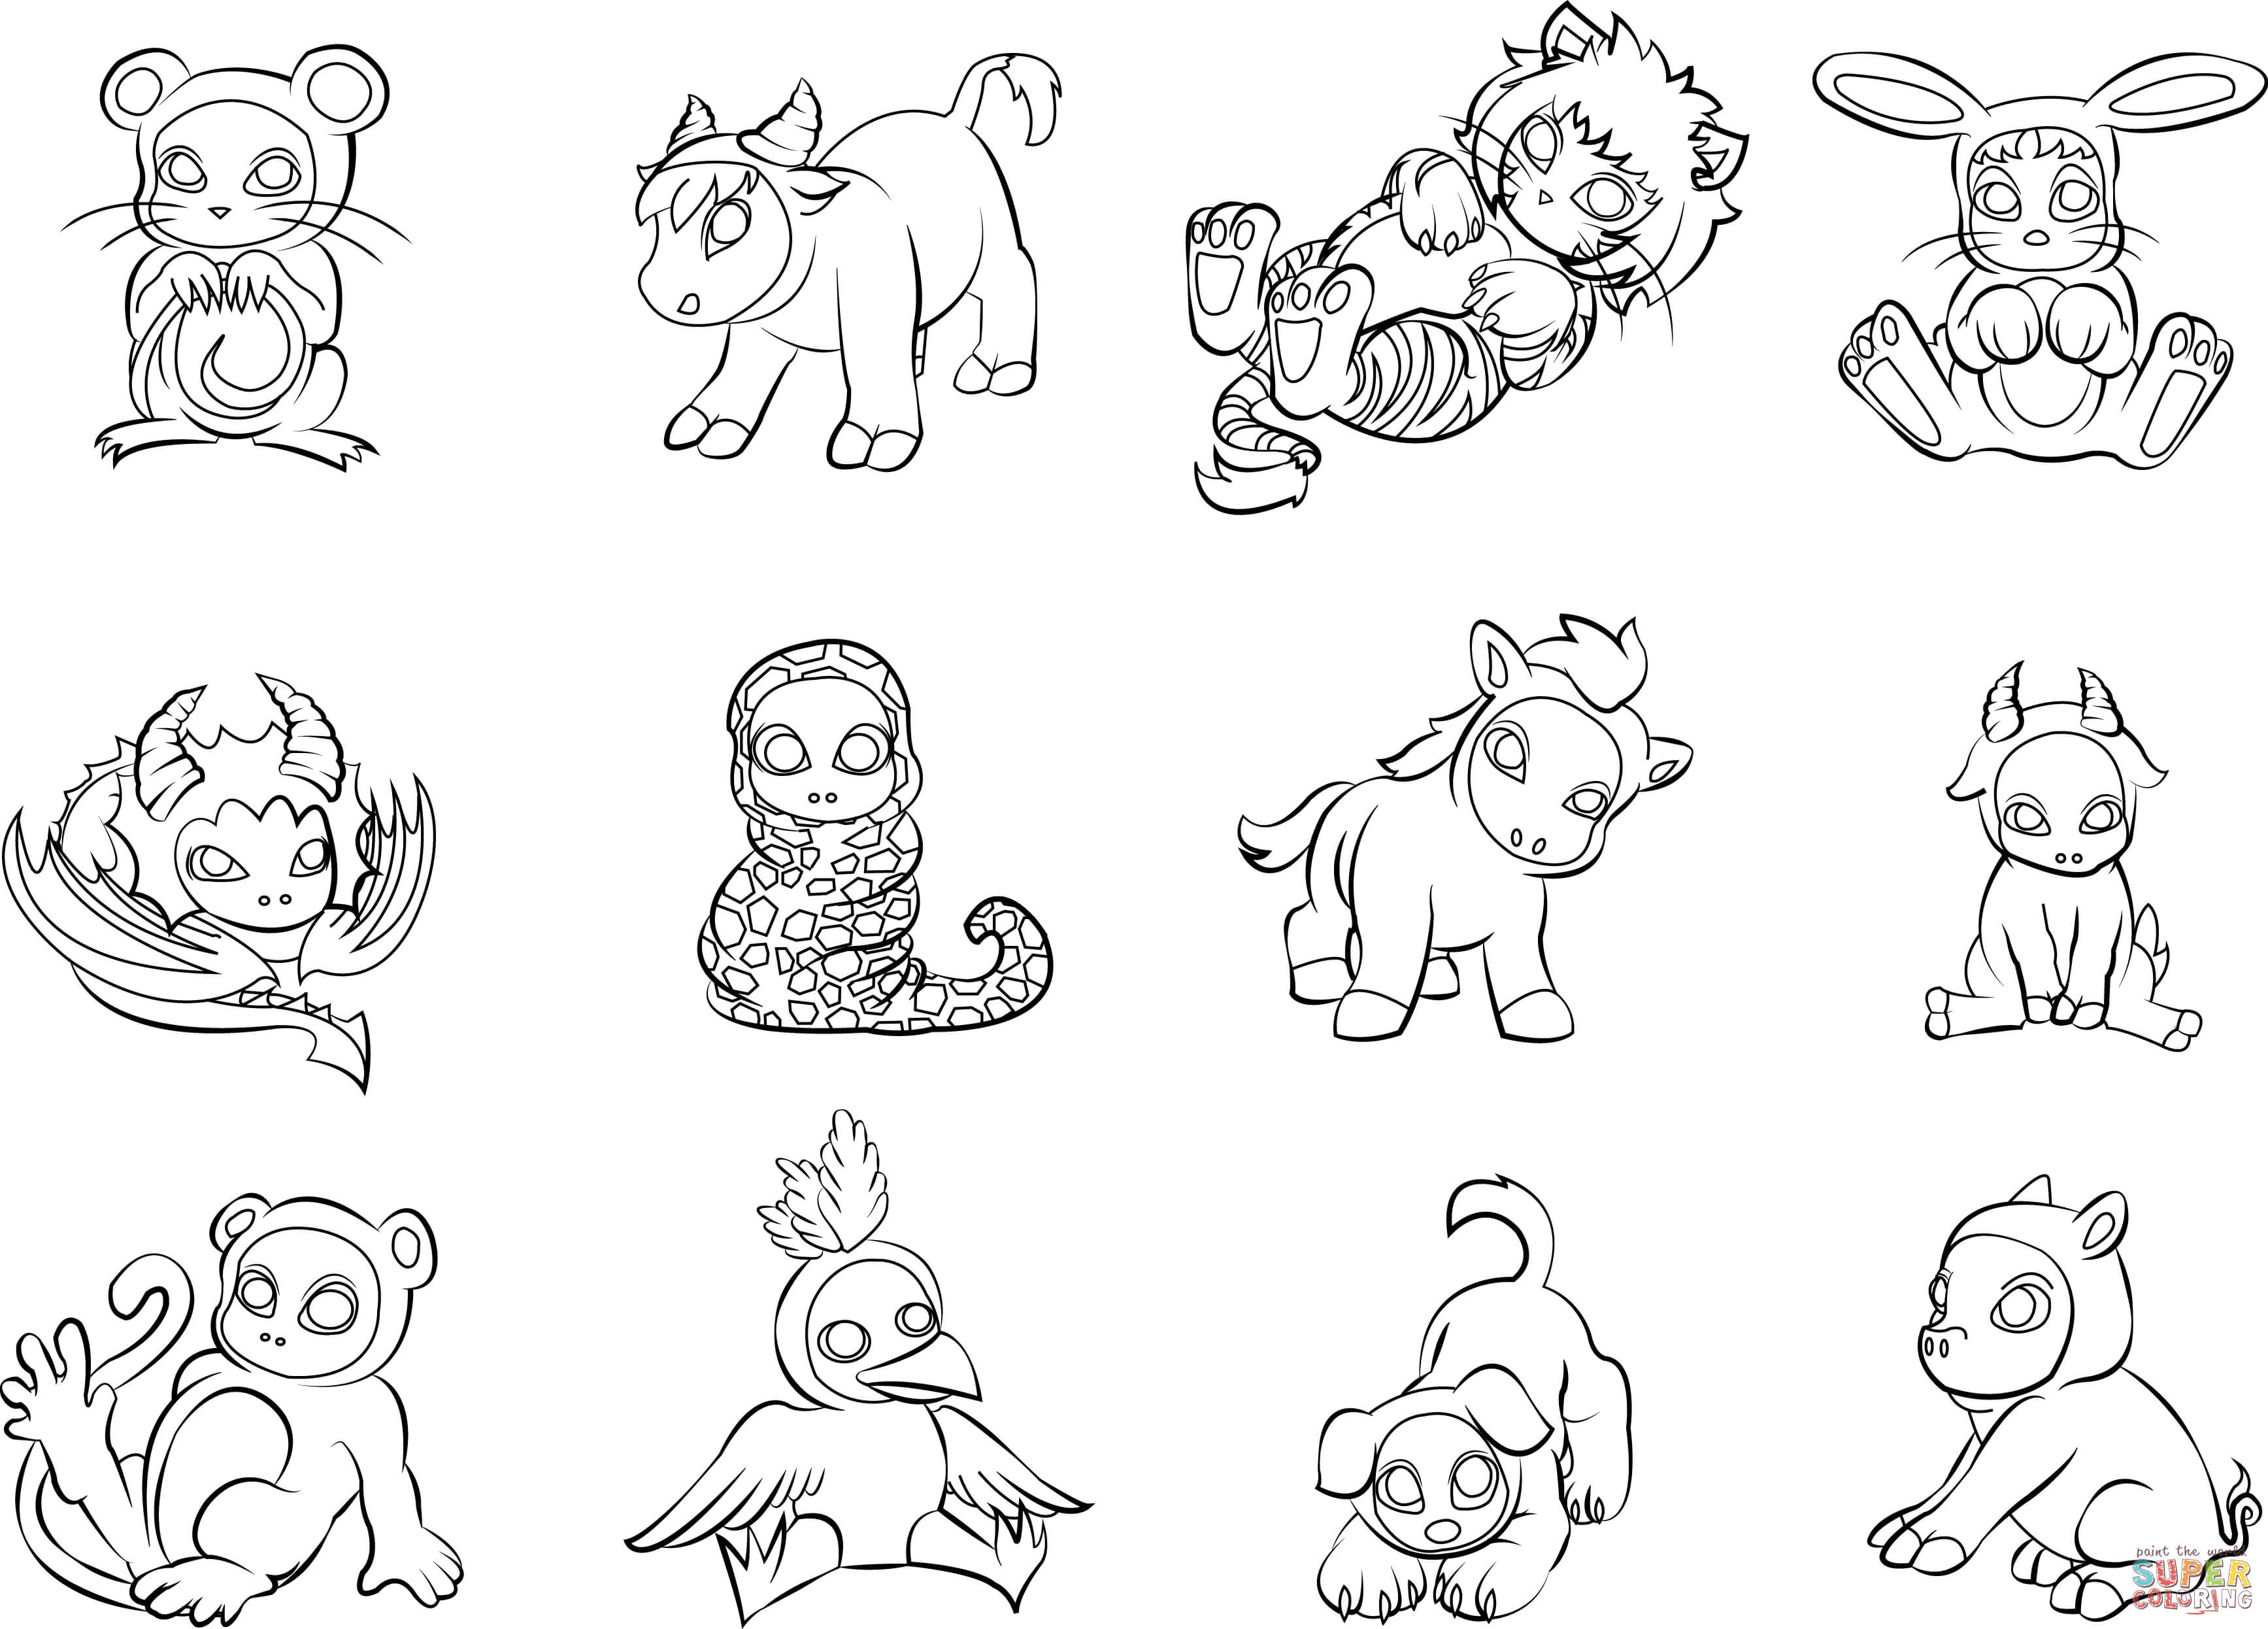 12 Chinese Zodiac Animals Coloring Page | Free Printable In Chinese Calendar Animals Free Printable